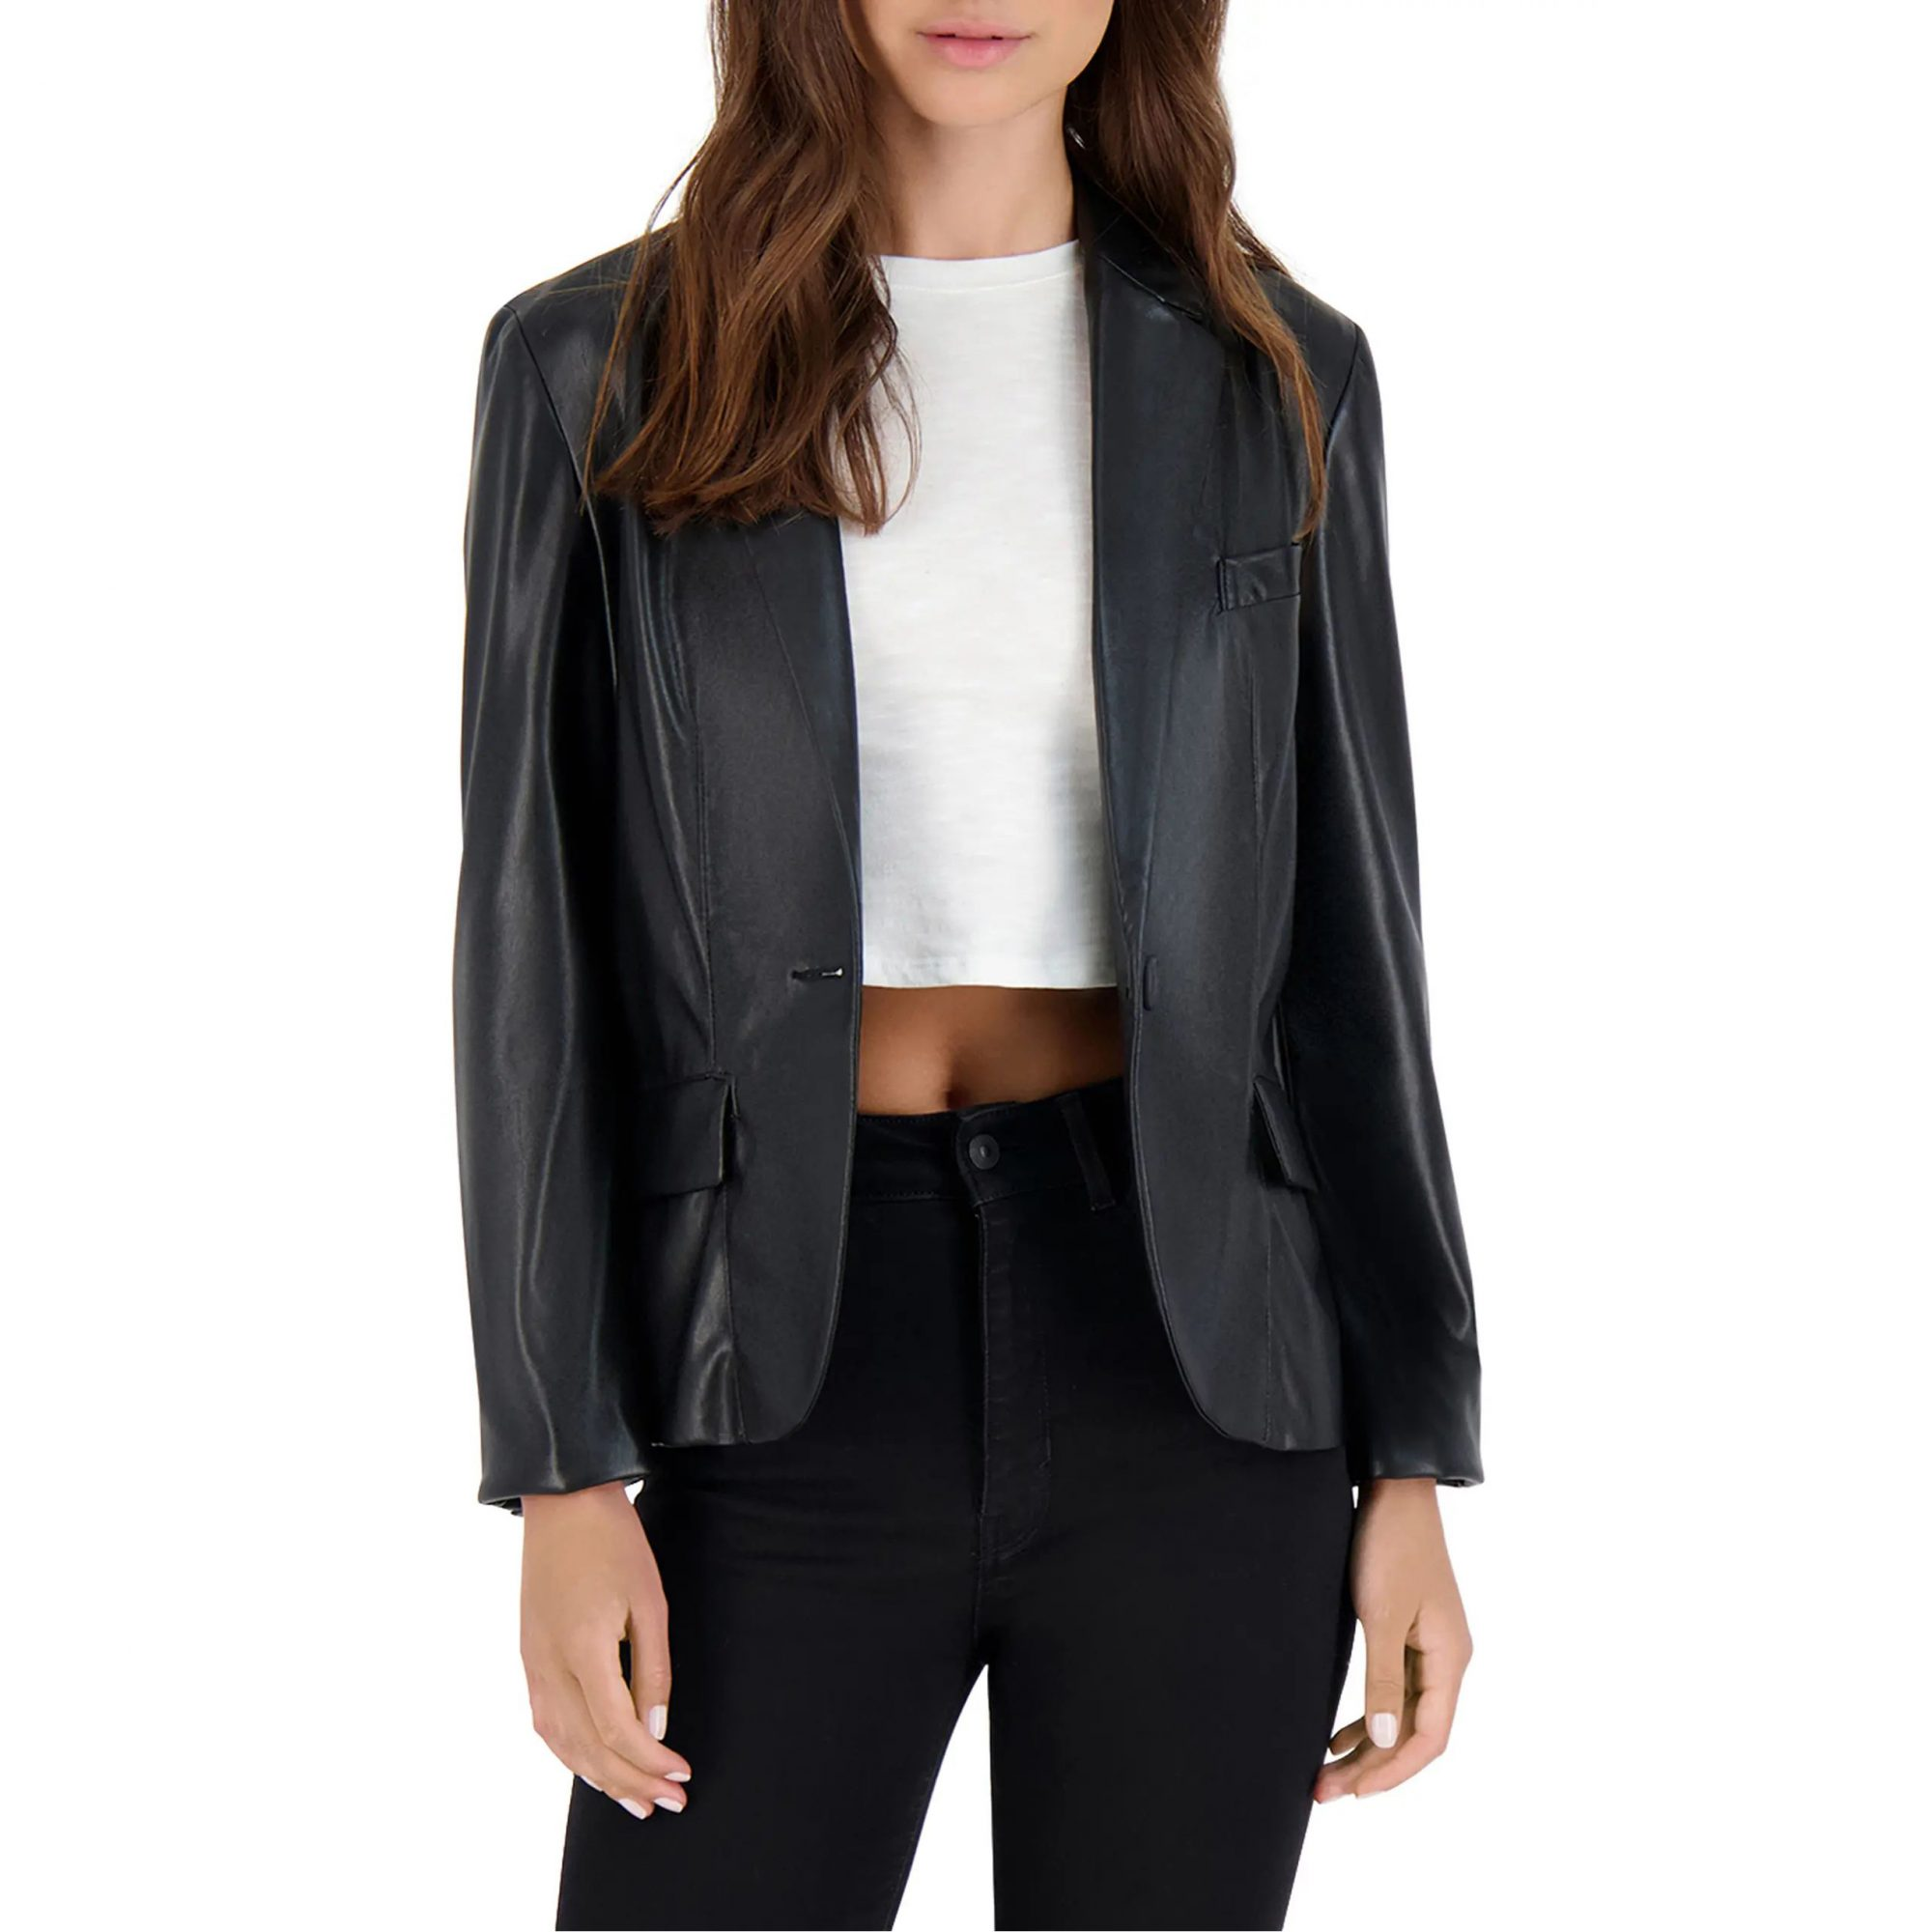 BB Dakota Serious or Not Faux Leather Blazer